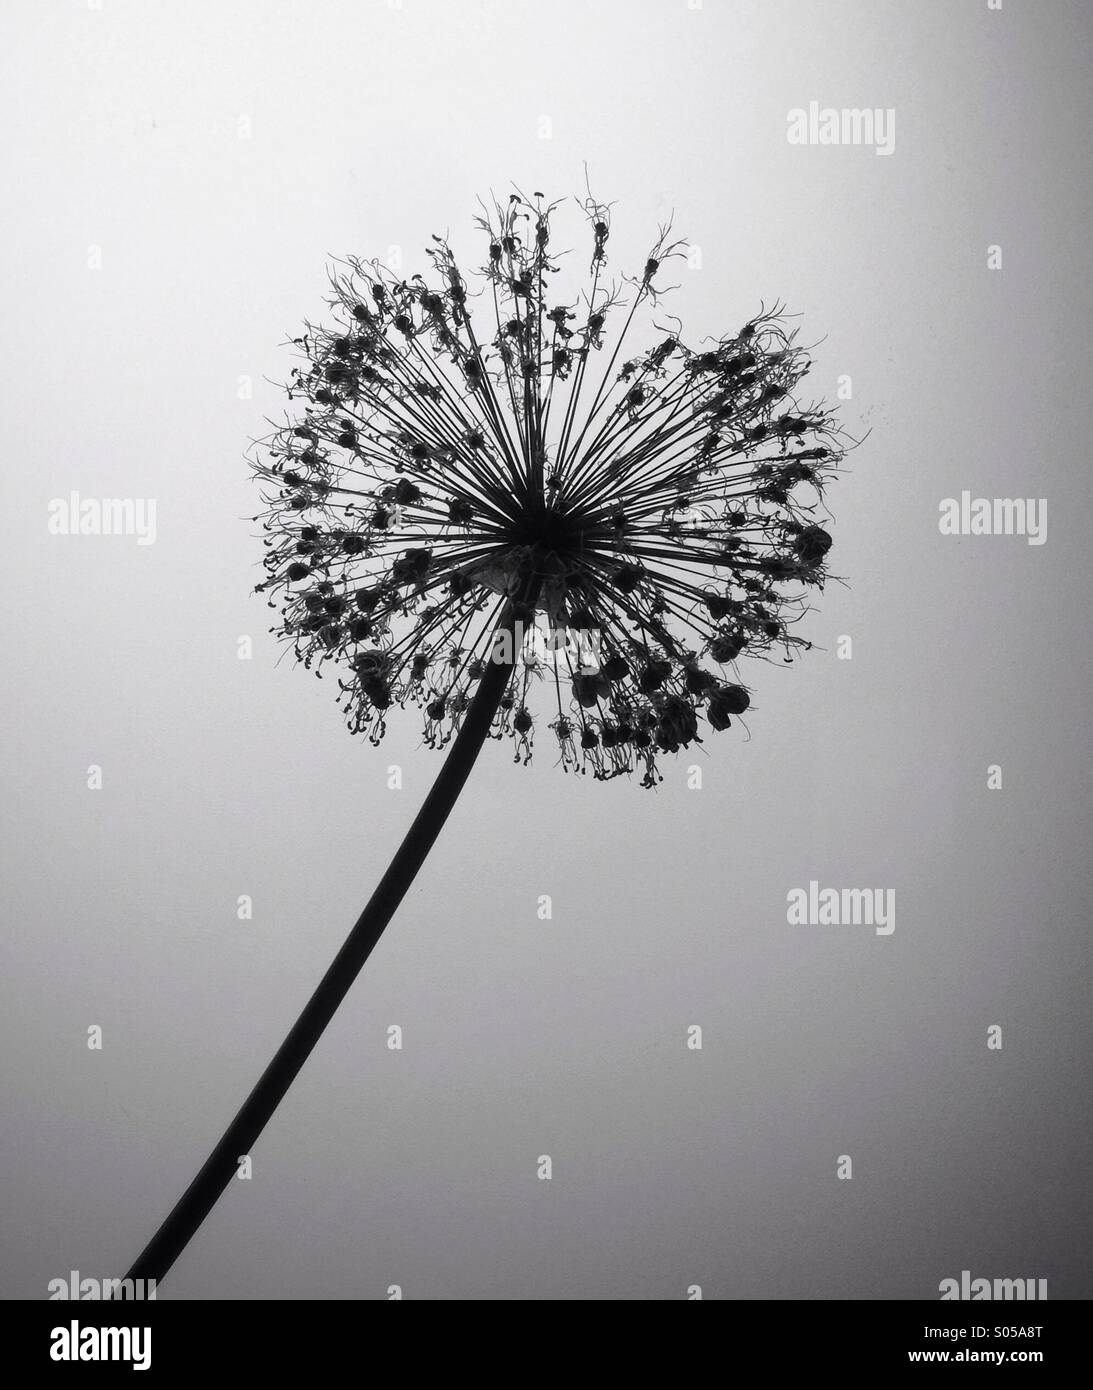 Silhouette of dried flower - Stock Image